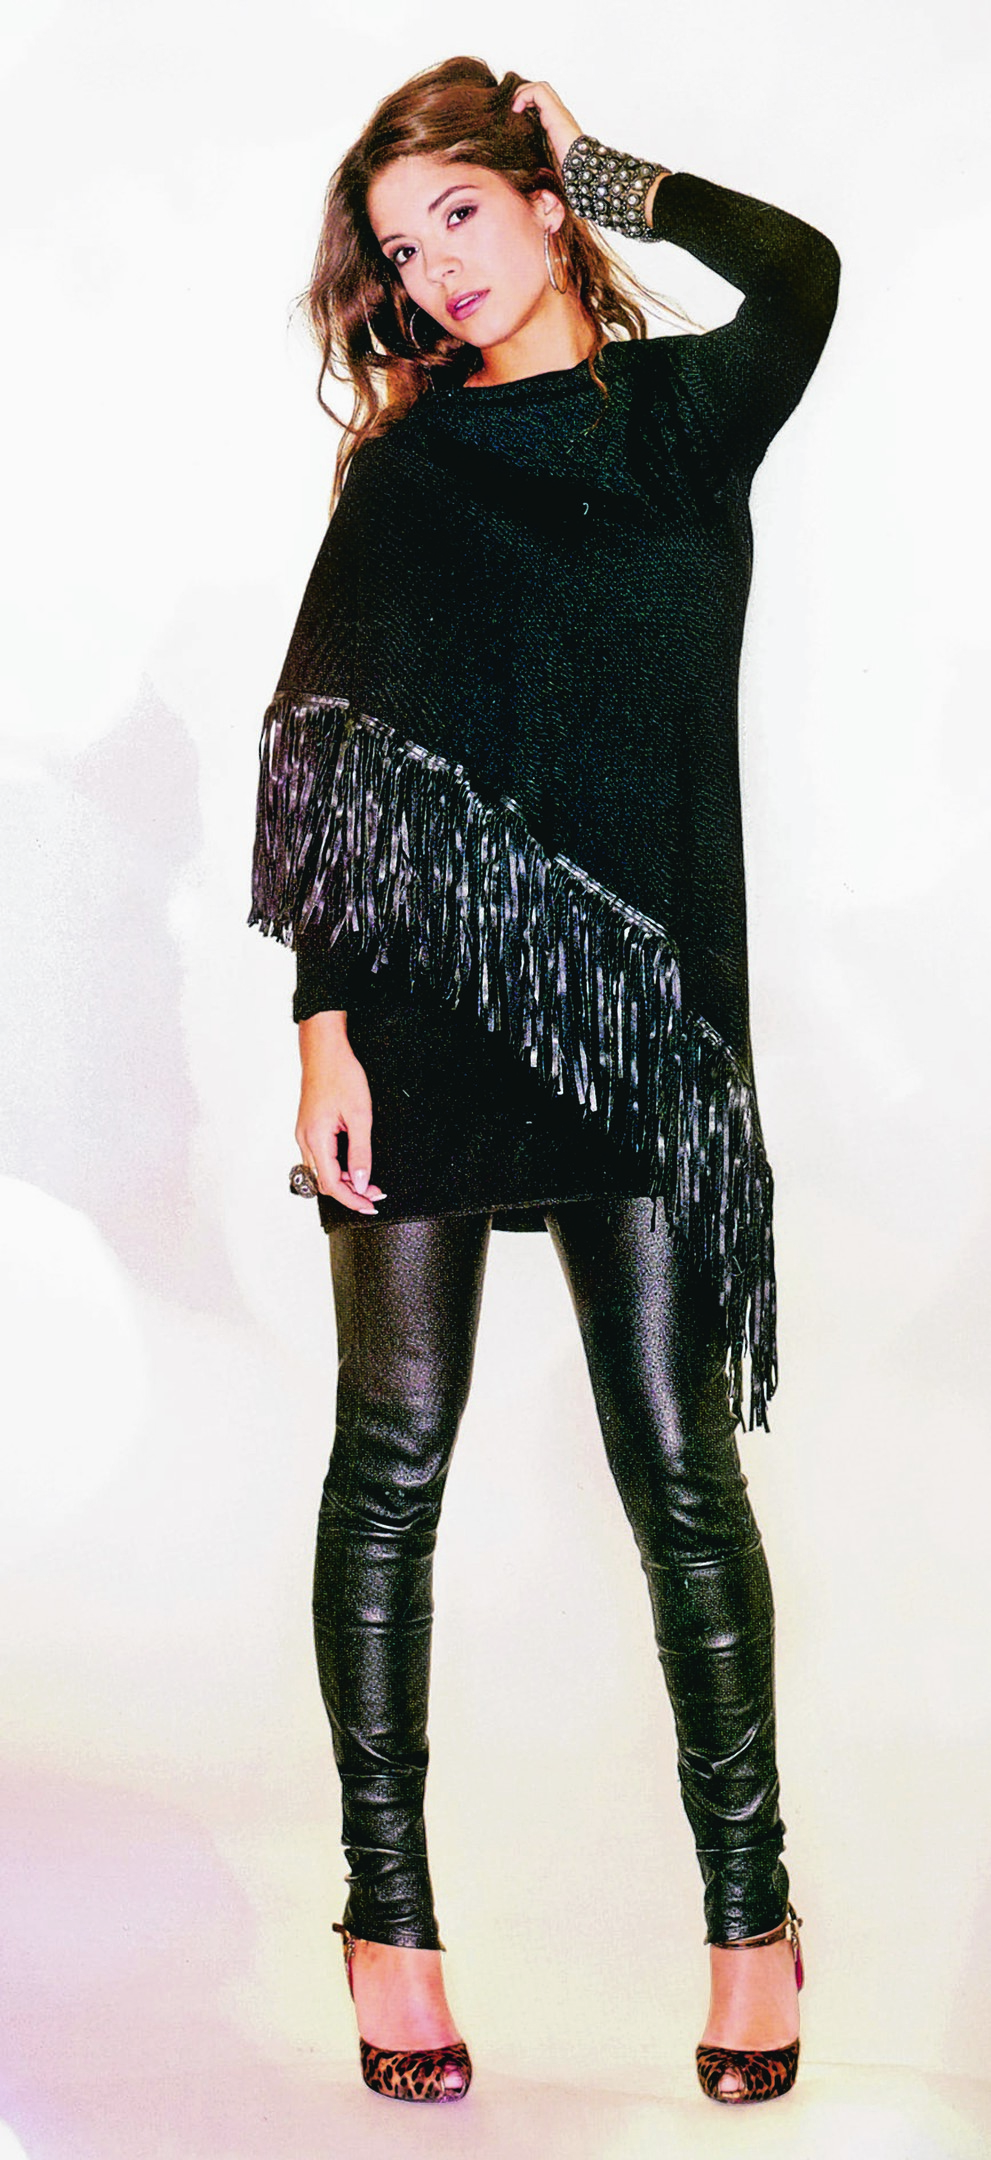 Beautiful leather fringed Icona dress/top - £200. Available at Catwalkers of Ellon. Tel 01358 720341